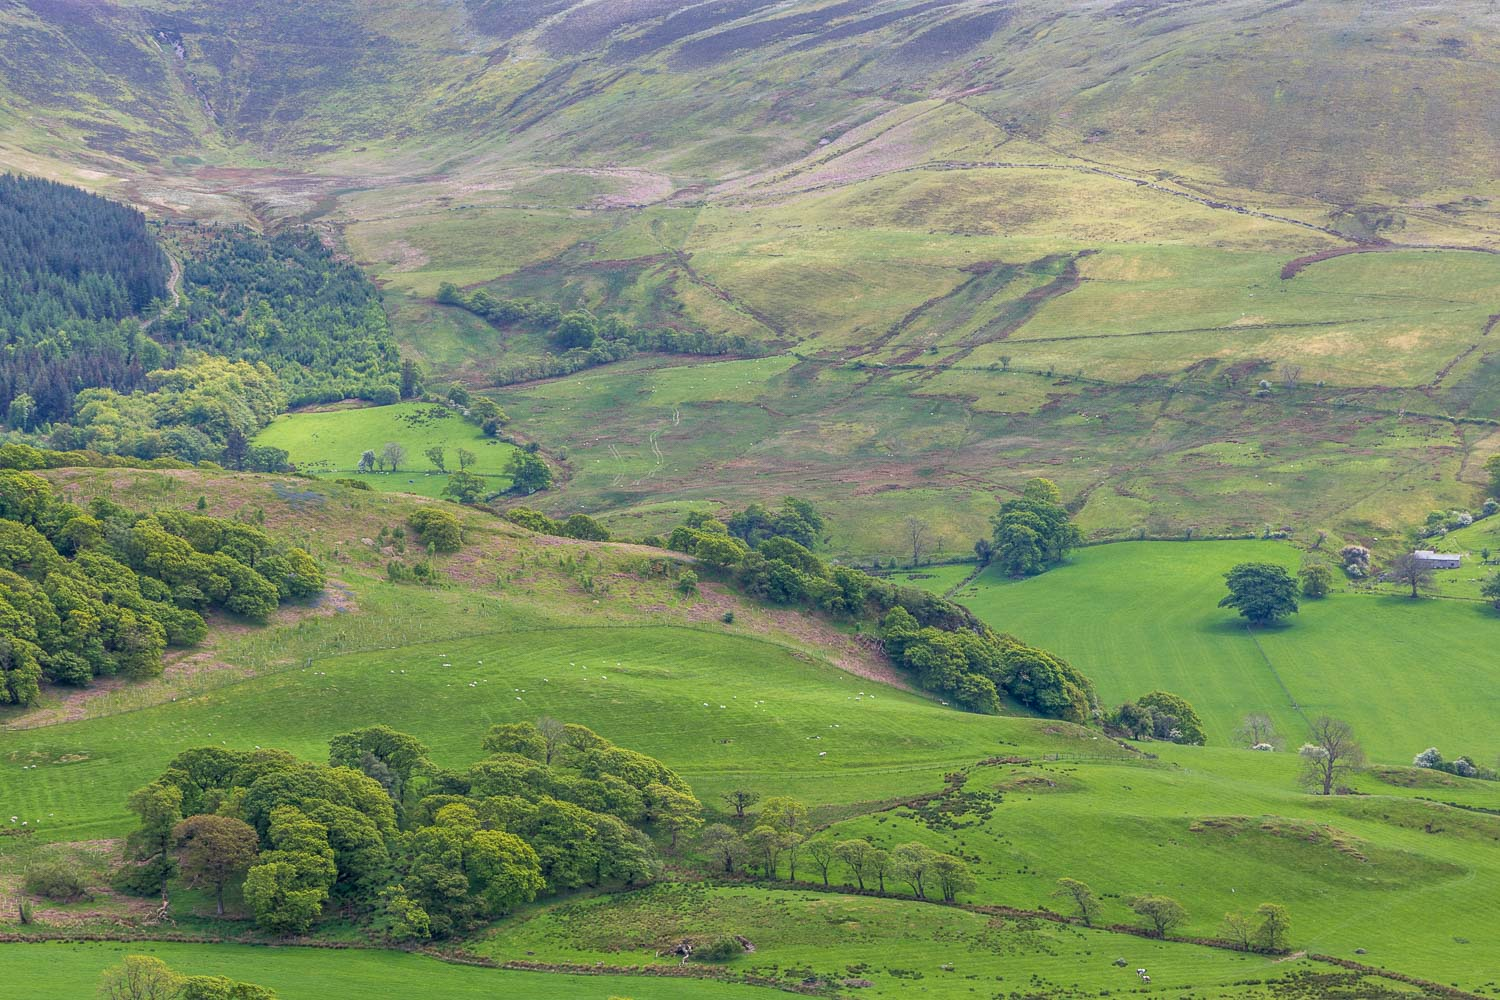 Sale Fell walk